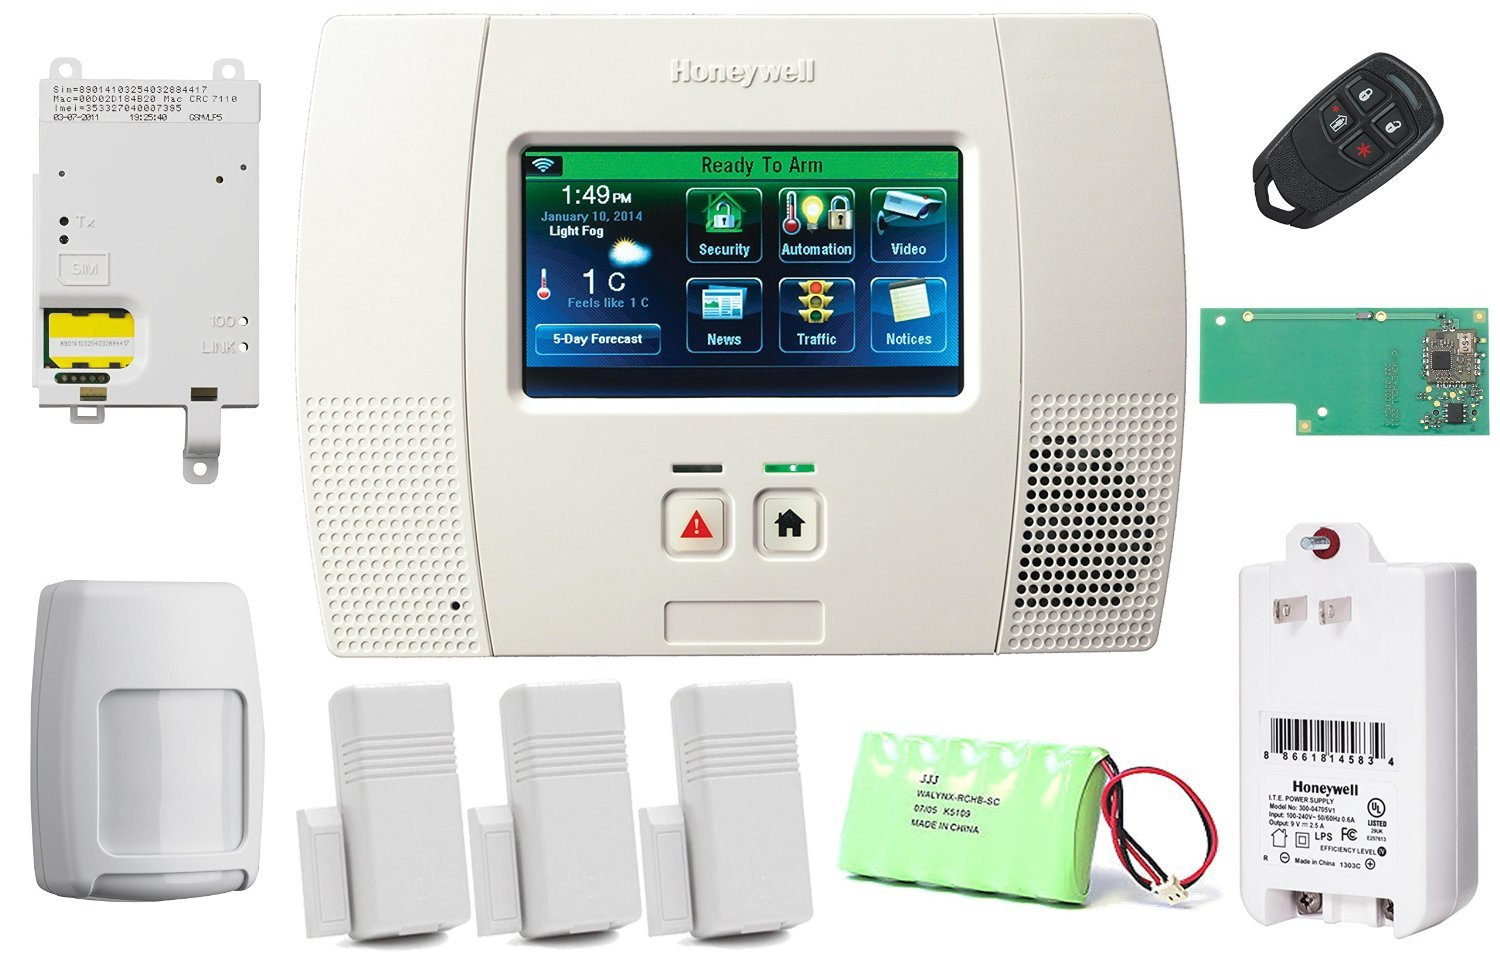 Amazon honeywell lynx touch l5200 security alarm kit with amazon honeywell lynx touch l5200 security alarm kit with cellular communicator and zwave module camera photo solutioingenieria Image collections